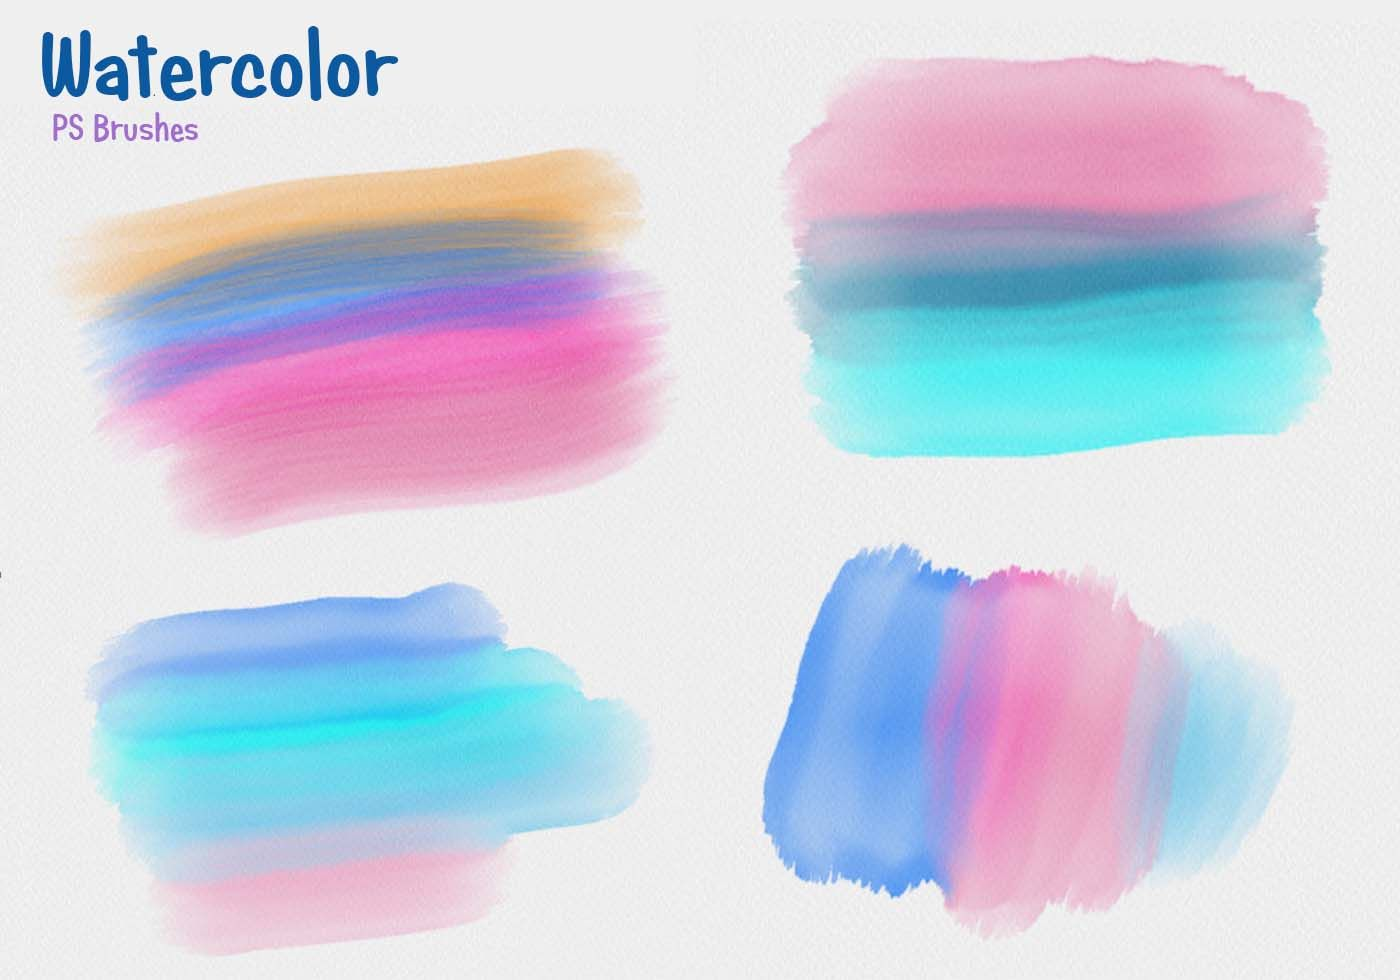 20 Watercolor Mask Ps Brushes Abr Free Photoshop Brushes At